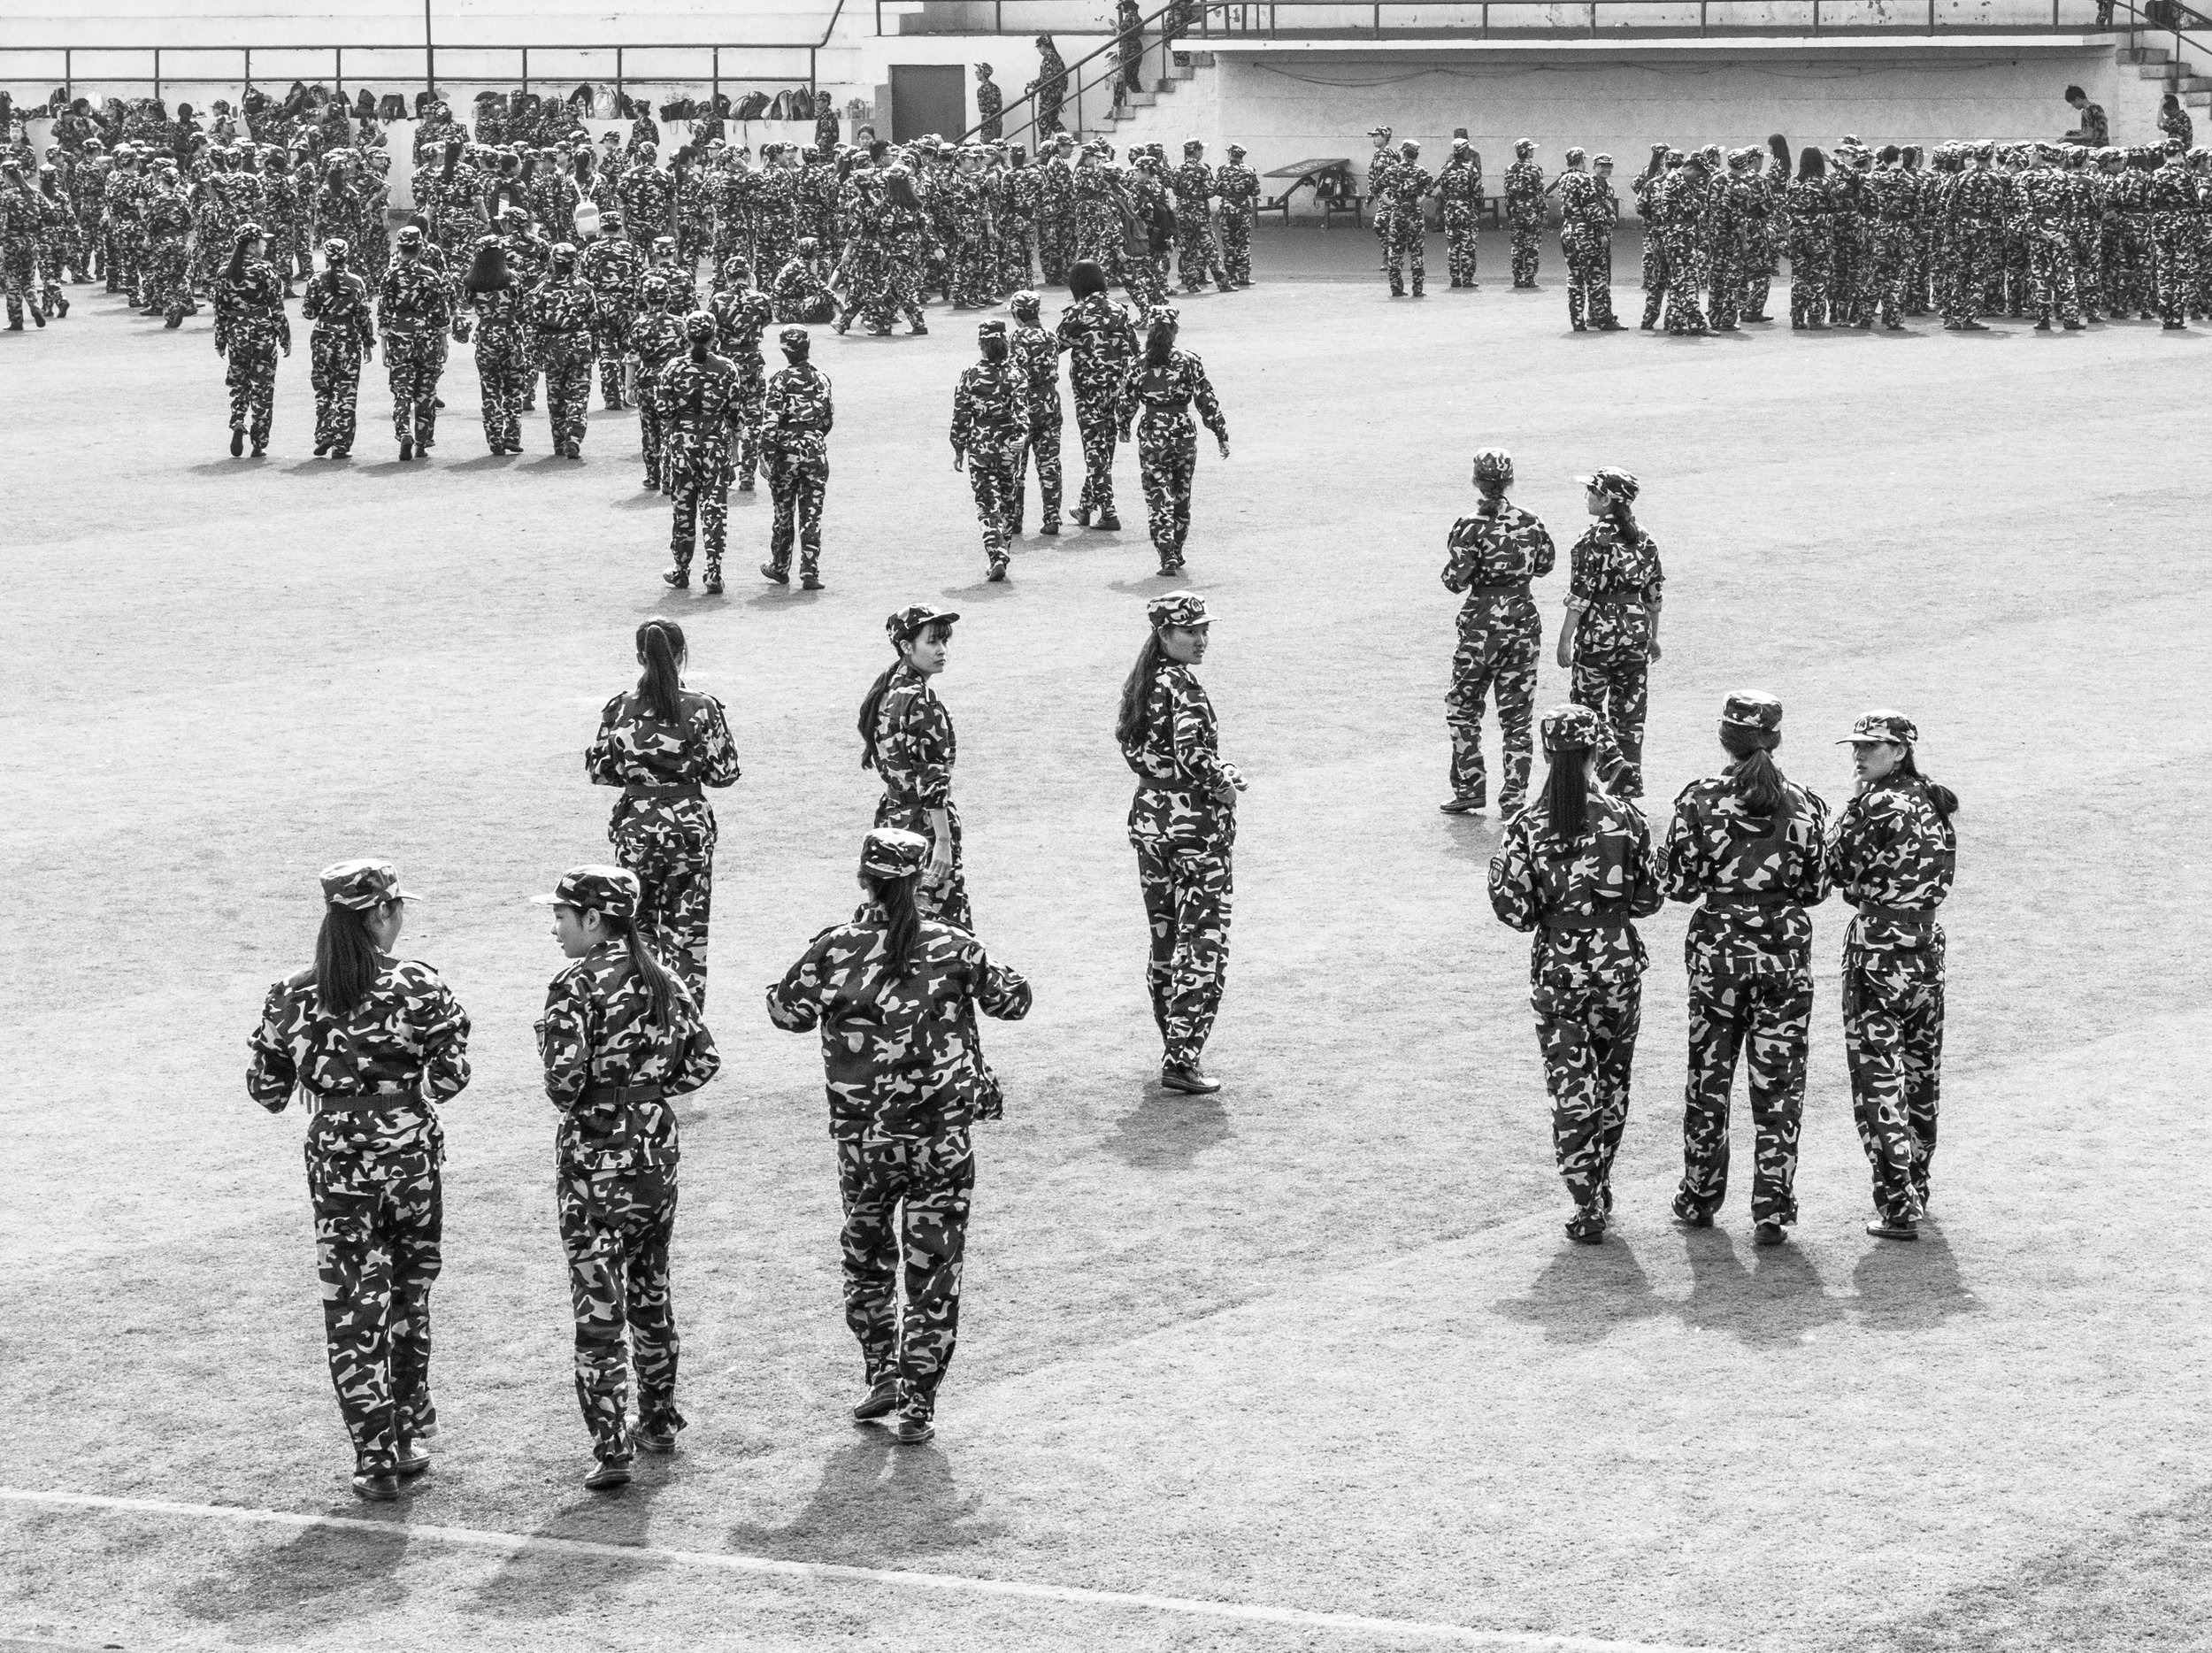 Xiangdao, China, 2014. © PMB No idea what these young women were doing - it looked like a college cadet force - they went on to practise unarmed combat and bandage imaginary wounds. Categories? Military; patterns; uniformity; people in action; black and white?